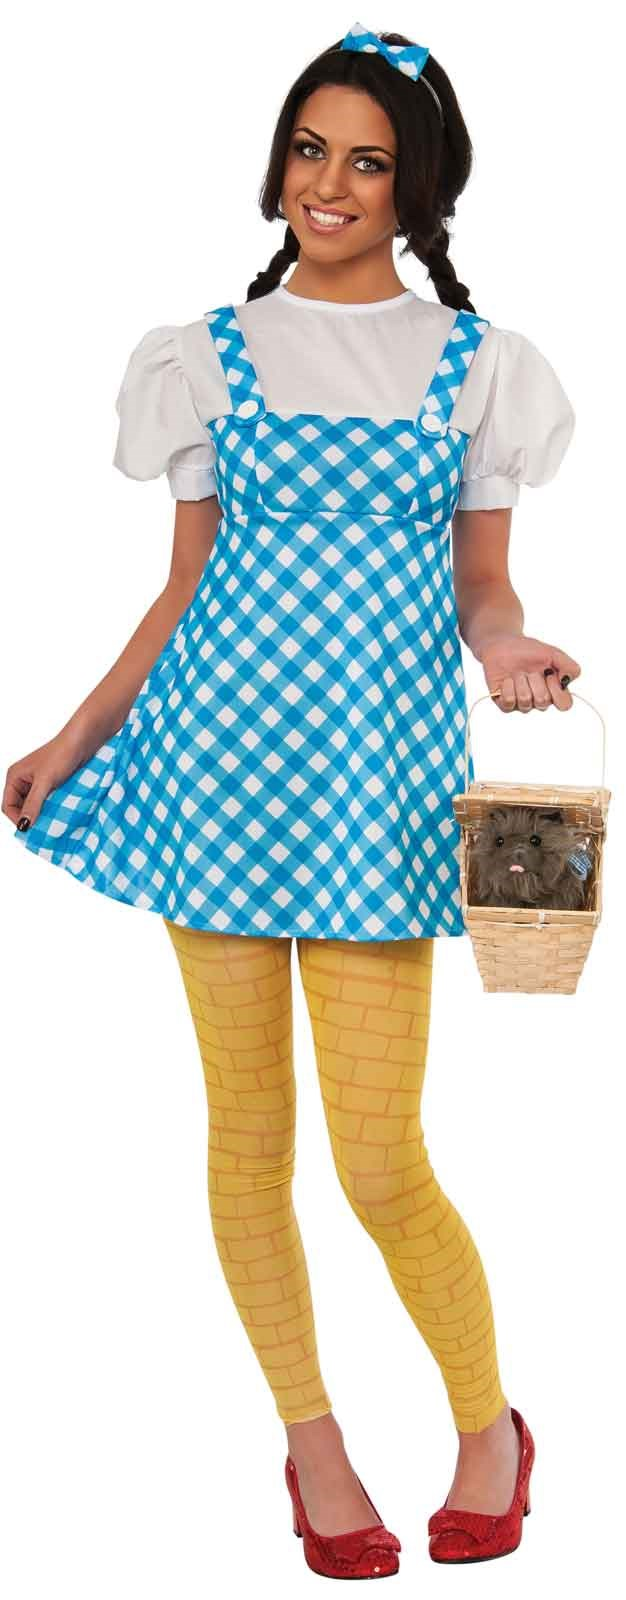 Wizard Of Oz - Young Adult Dorothy Dress | BuyCostumes.com